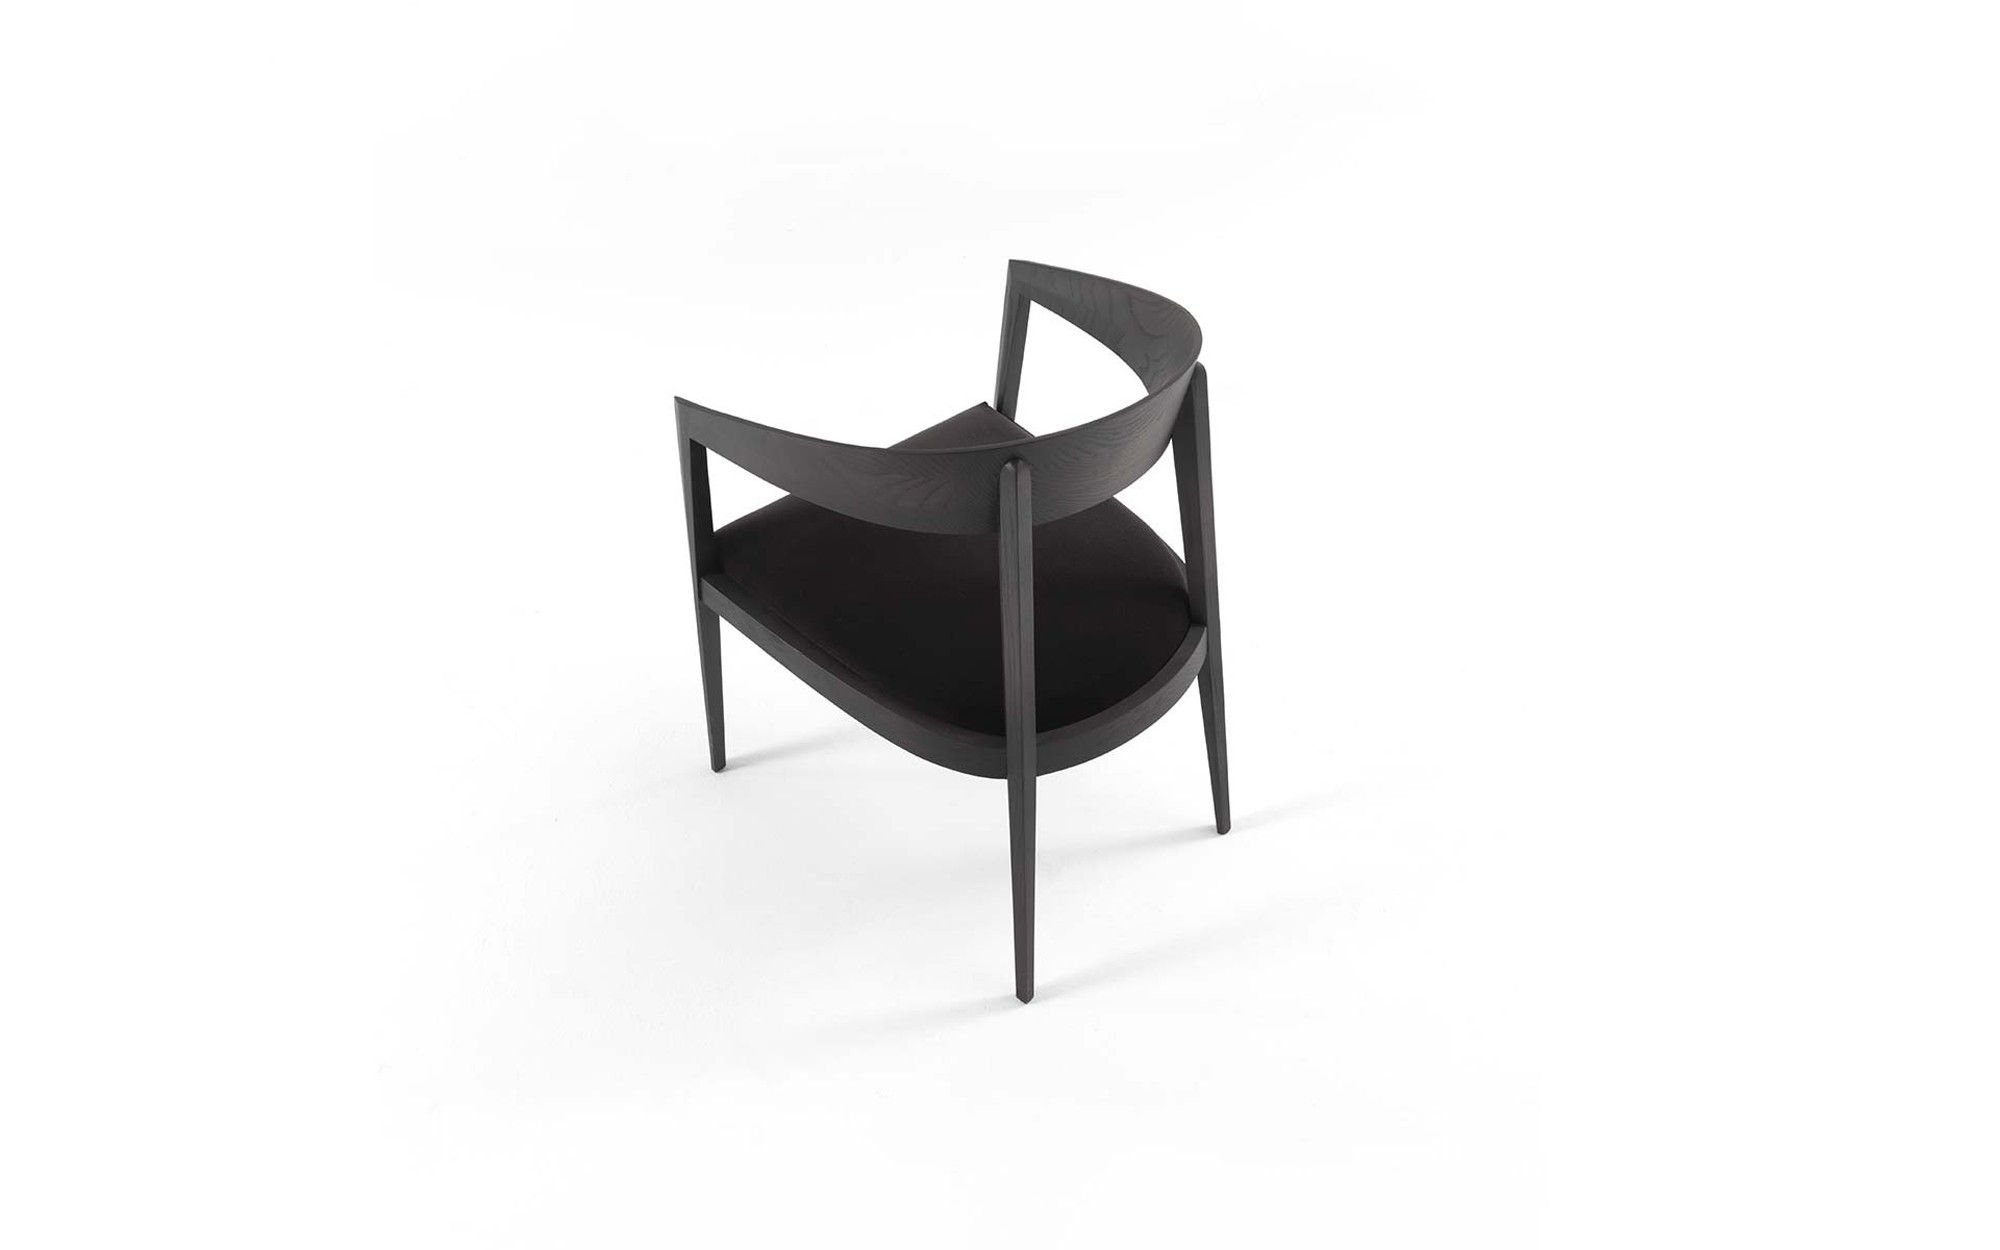 Home products chairs ics ipsilon - Lizzie Chair By Frigerio From Pure Interiors